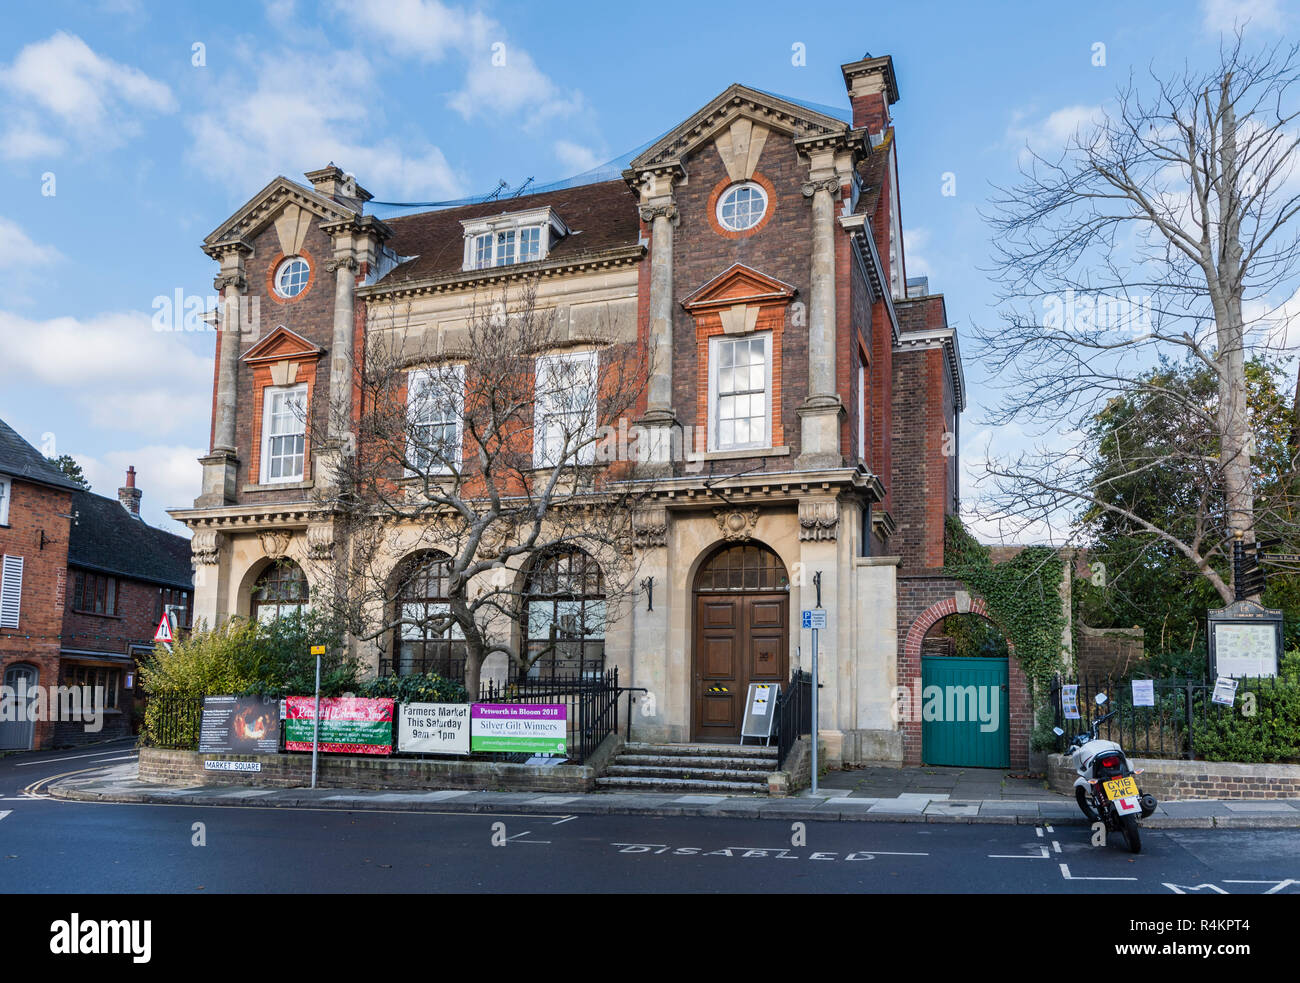 Old NatWest Bank building, Petworth's last bank to close in Market Square, Petworth, West Sussex, England, UK. Stock Photo